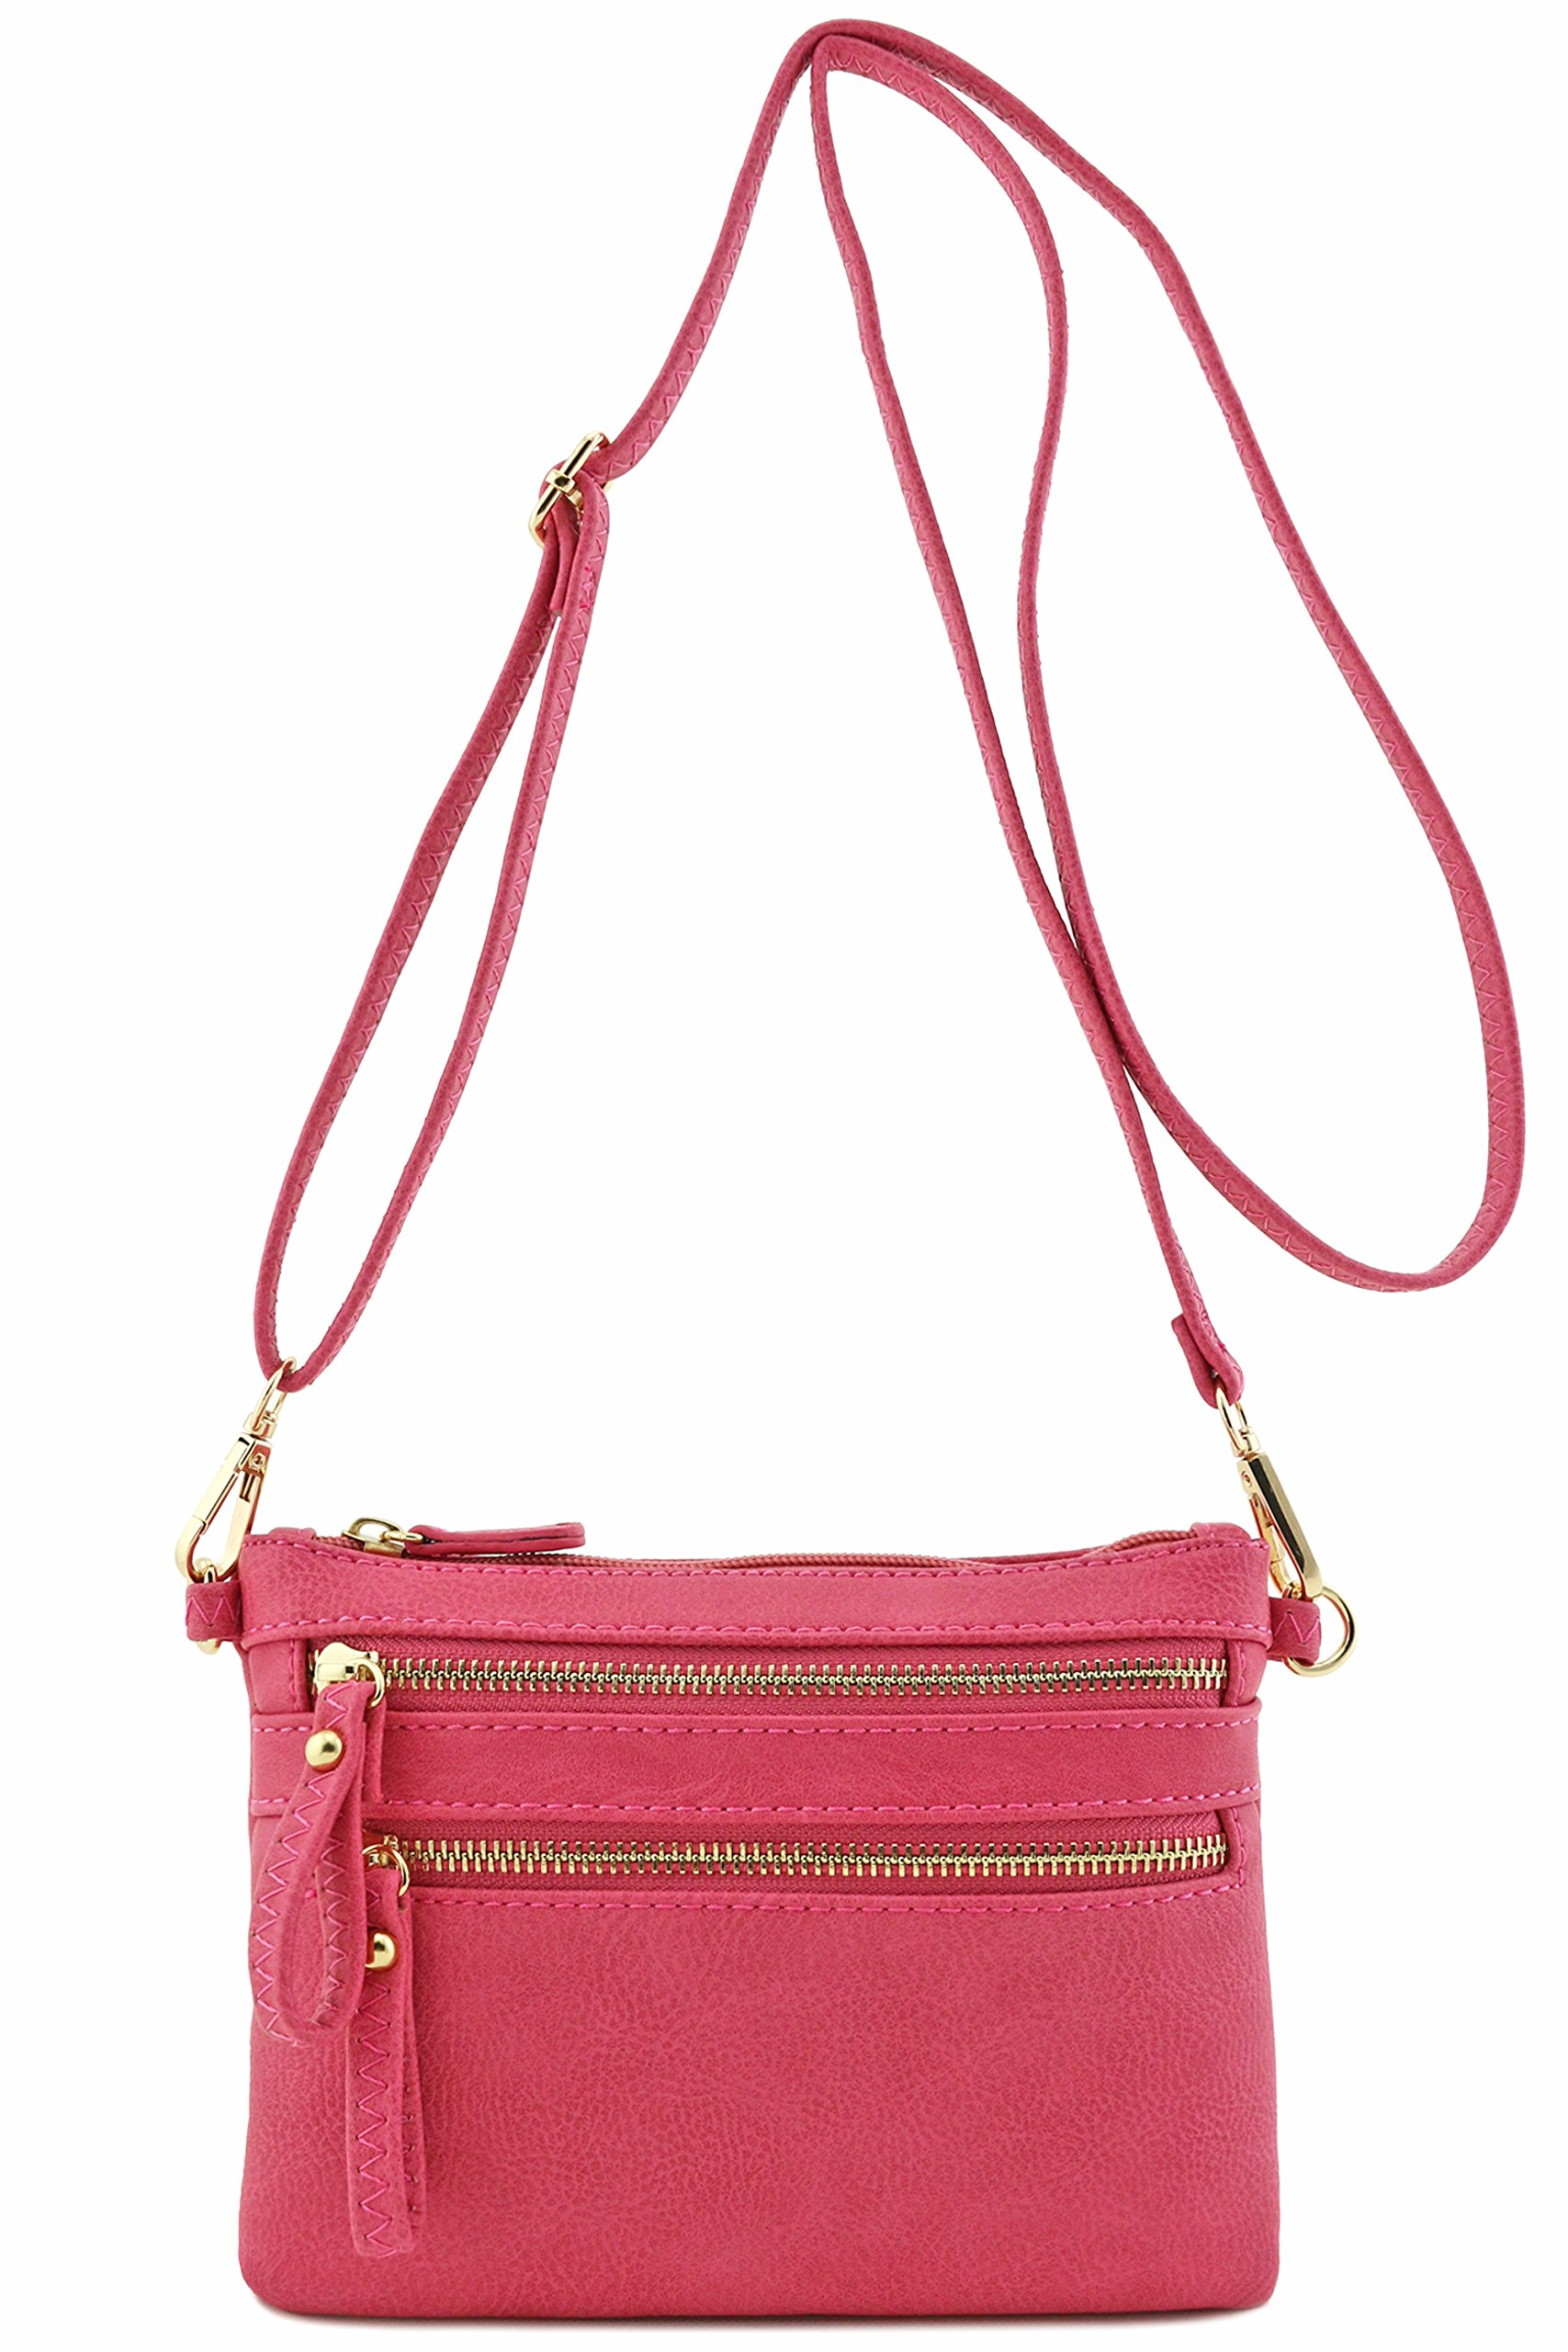 Multi Zipper Pocket Small Wristlet Crossbody Bag (Raspberry) by FashionPuzzle